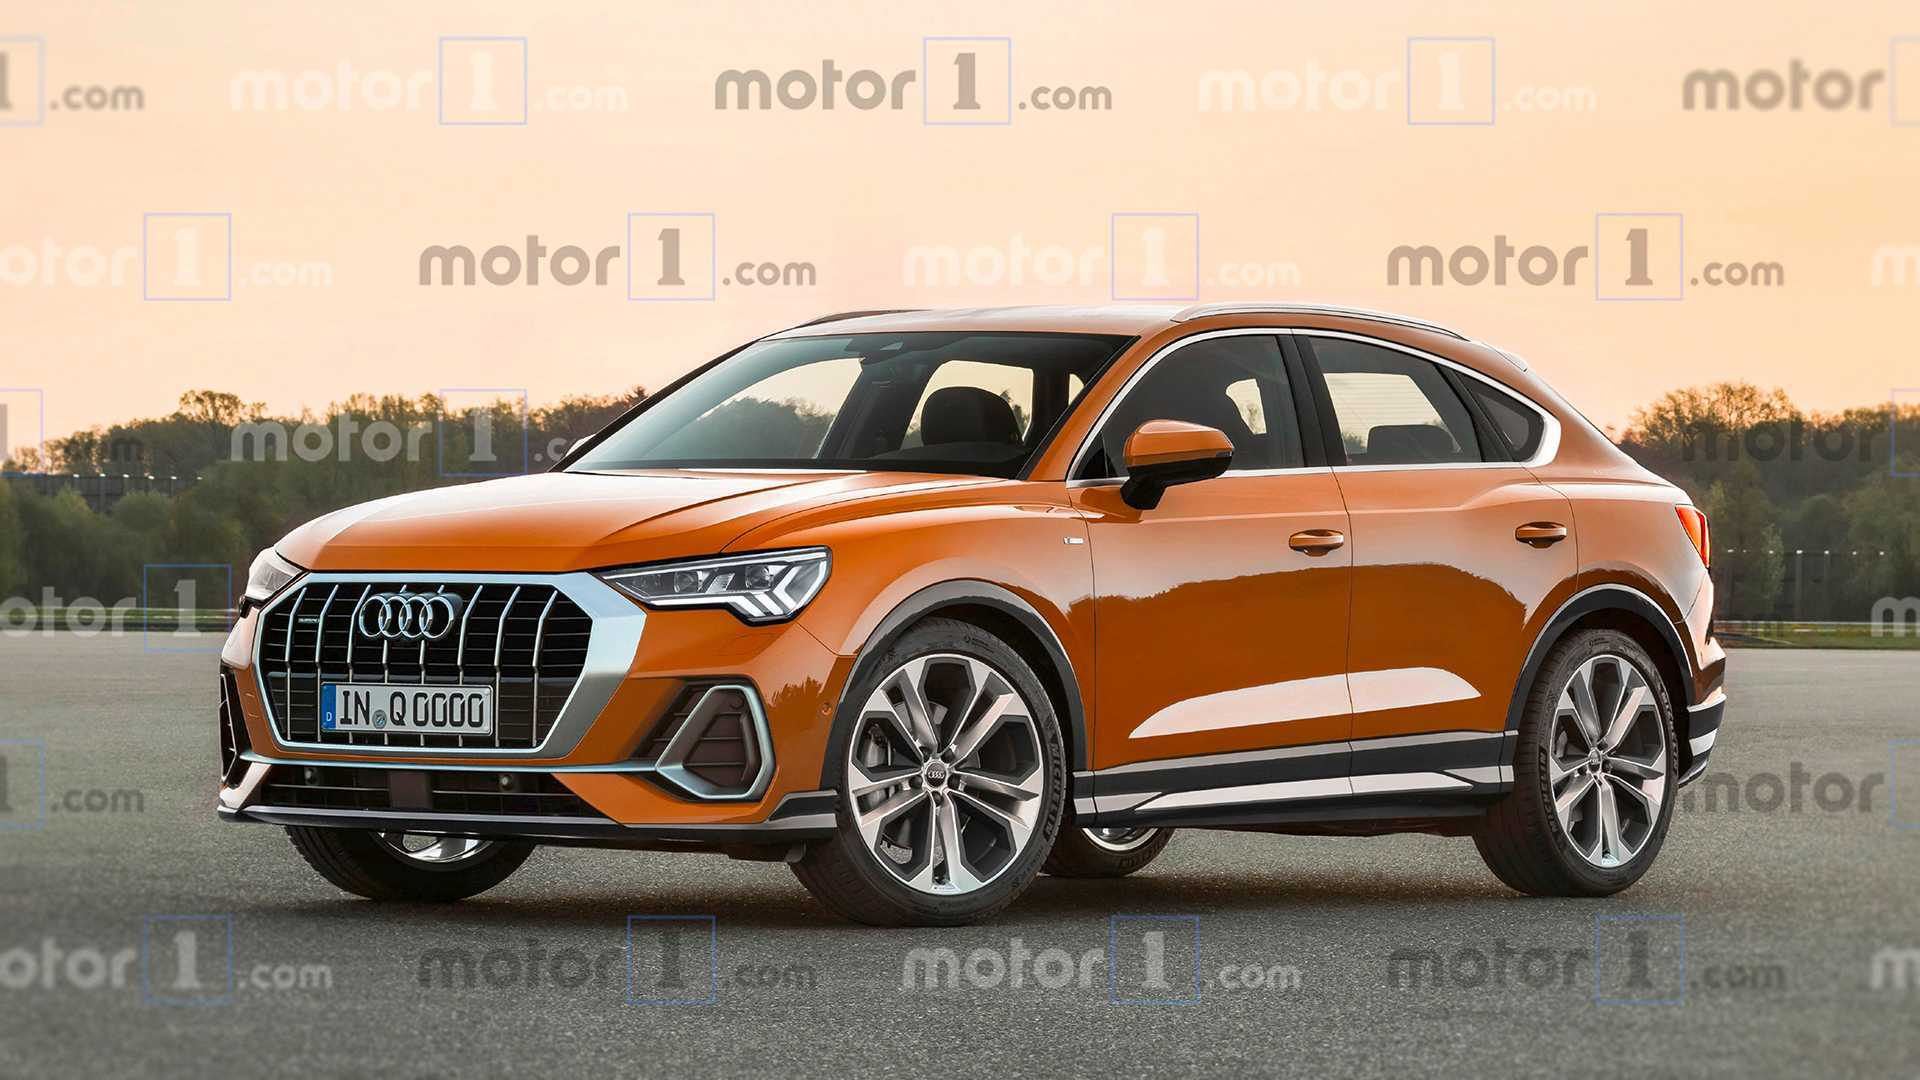 39 All New Audi Q3 2020 Release Date Interior